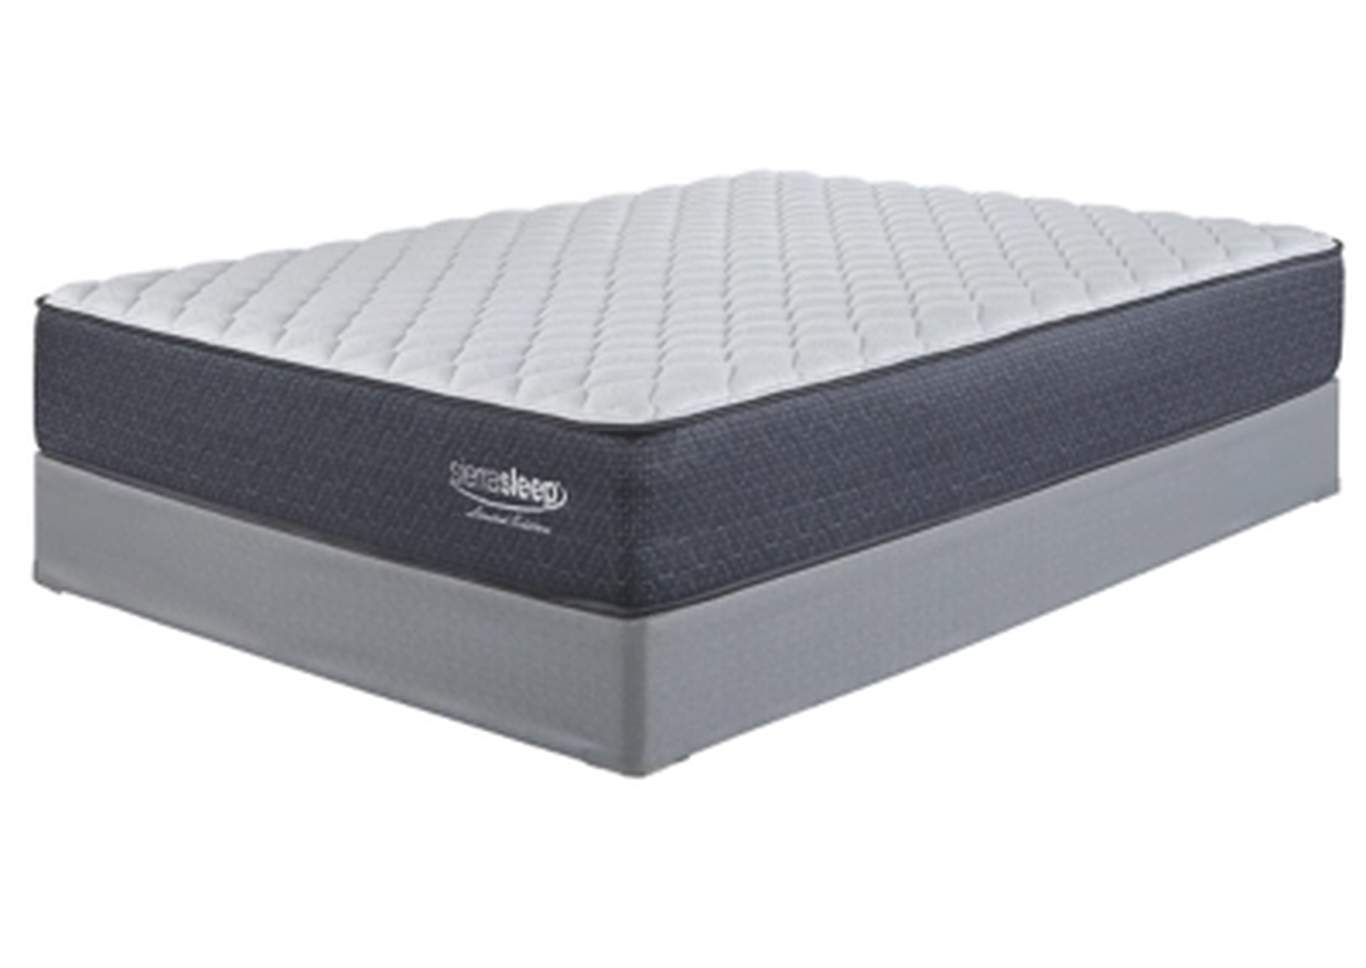 Limited Edition Firm White Queen Mattress,Sierra Sleep